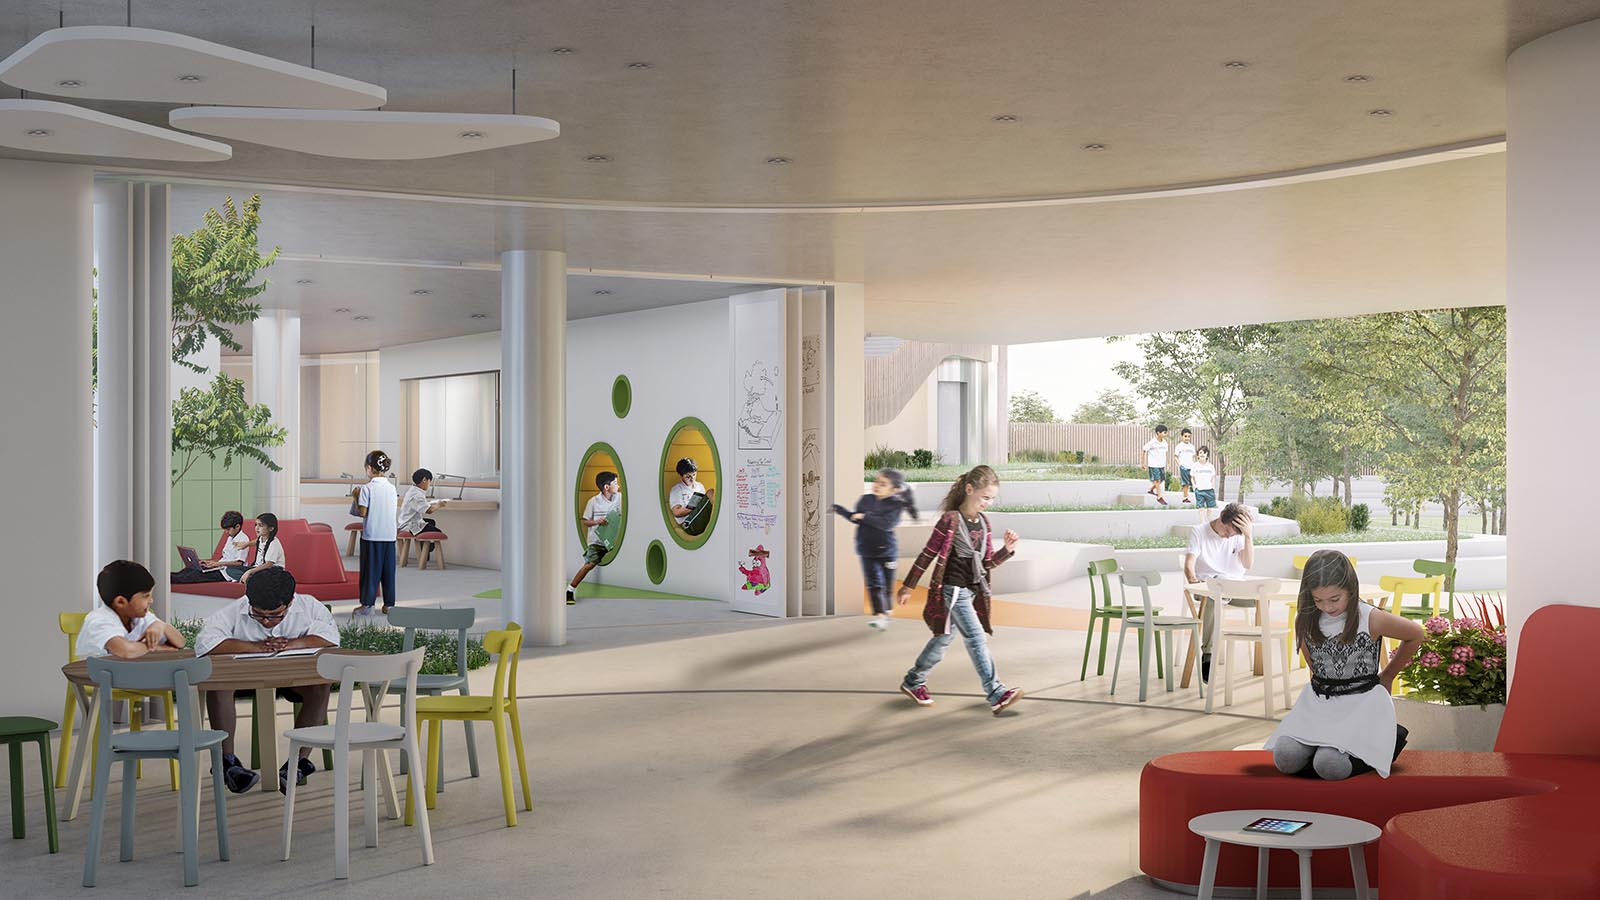 Open learning space interior view_Markham College_IDOM_Rosan Bosch